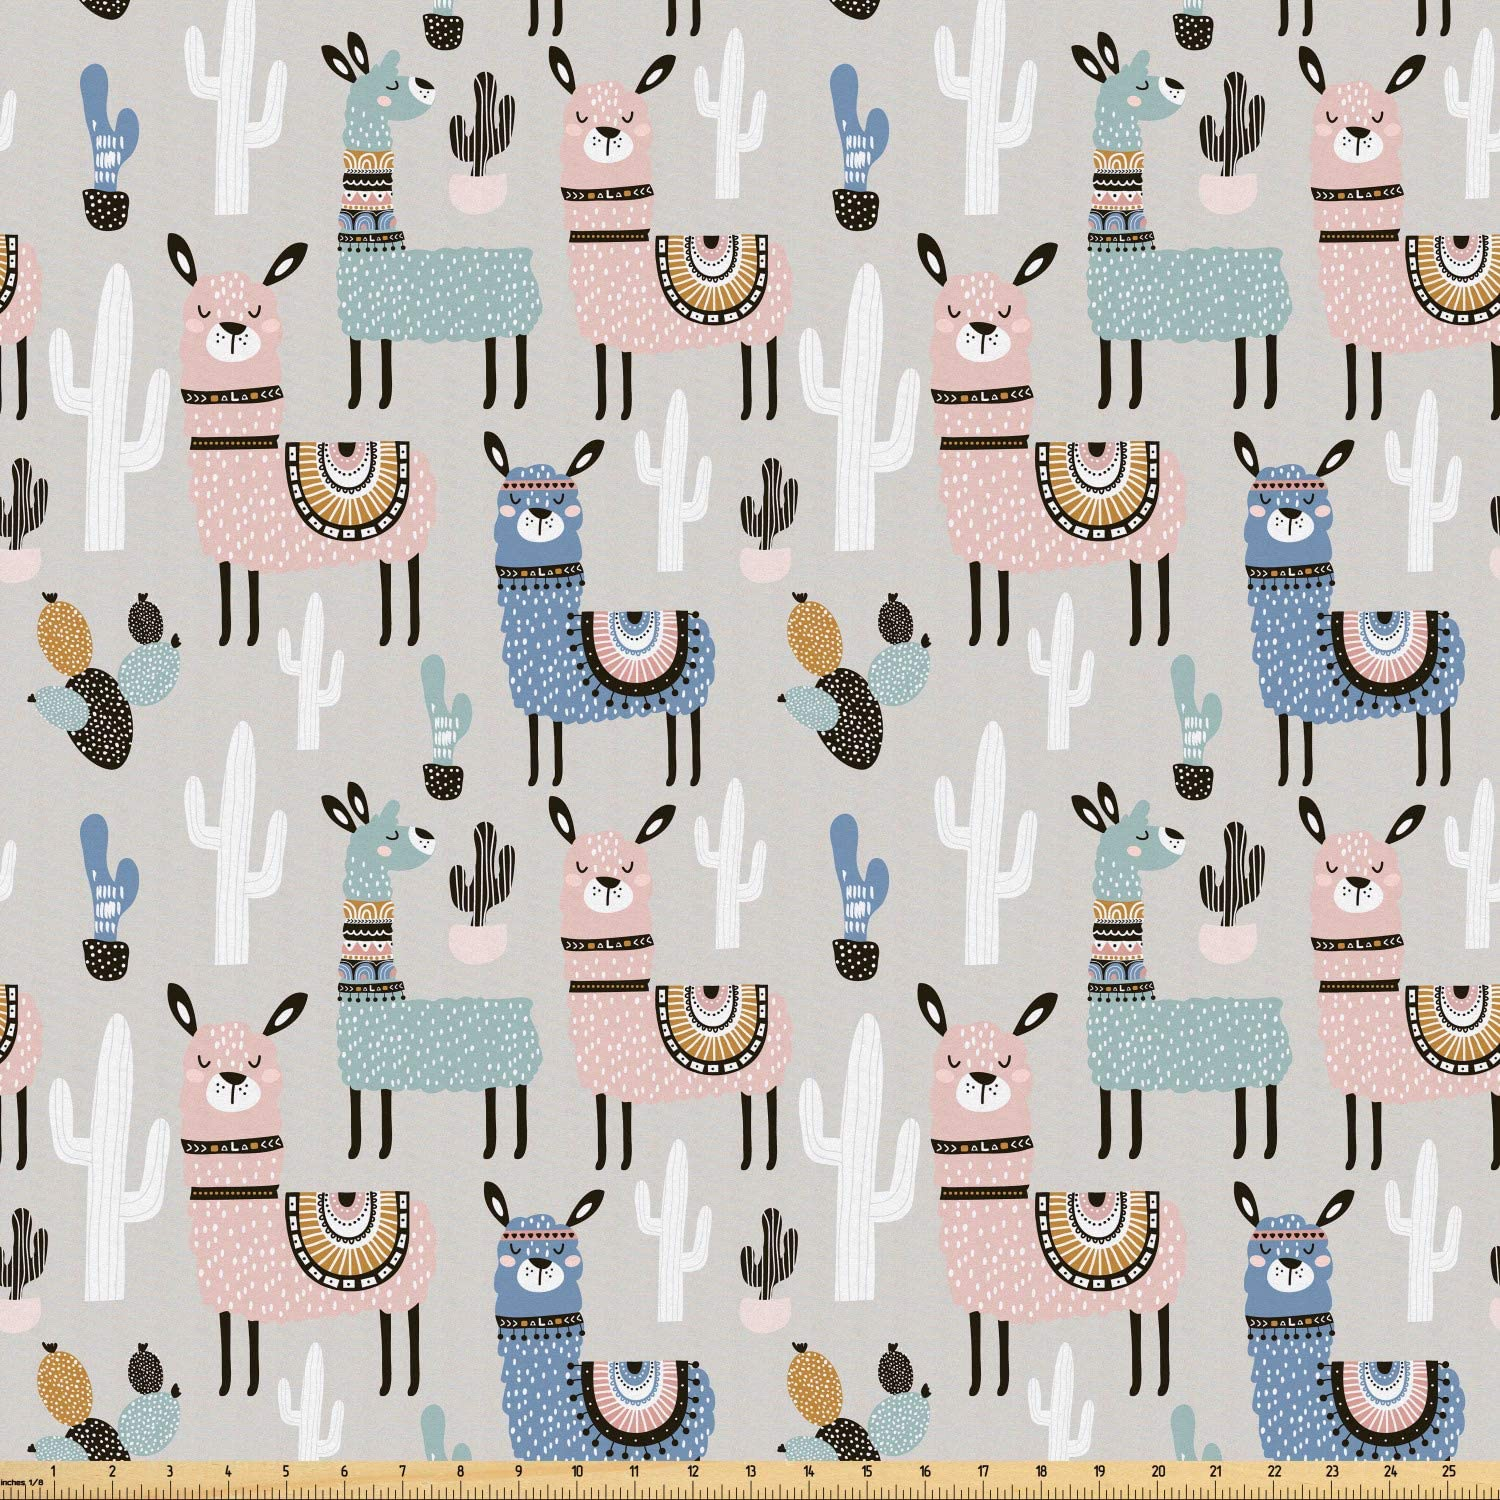 Ambesonne Hipster Fabric by The Yard, Llama Guanaco South American Animals Childish Hand Drawn Style Cartoon Art Print, Microfiber Fabric for Arts and Crafts Textiles & Decor, Multicolor